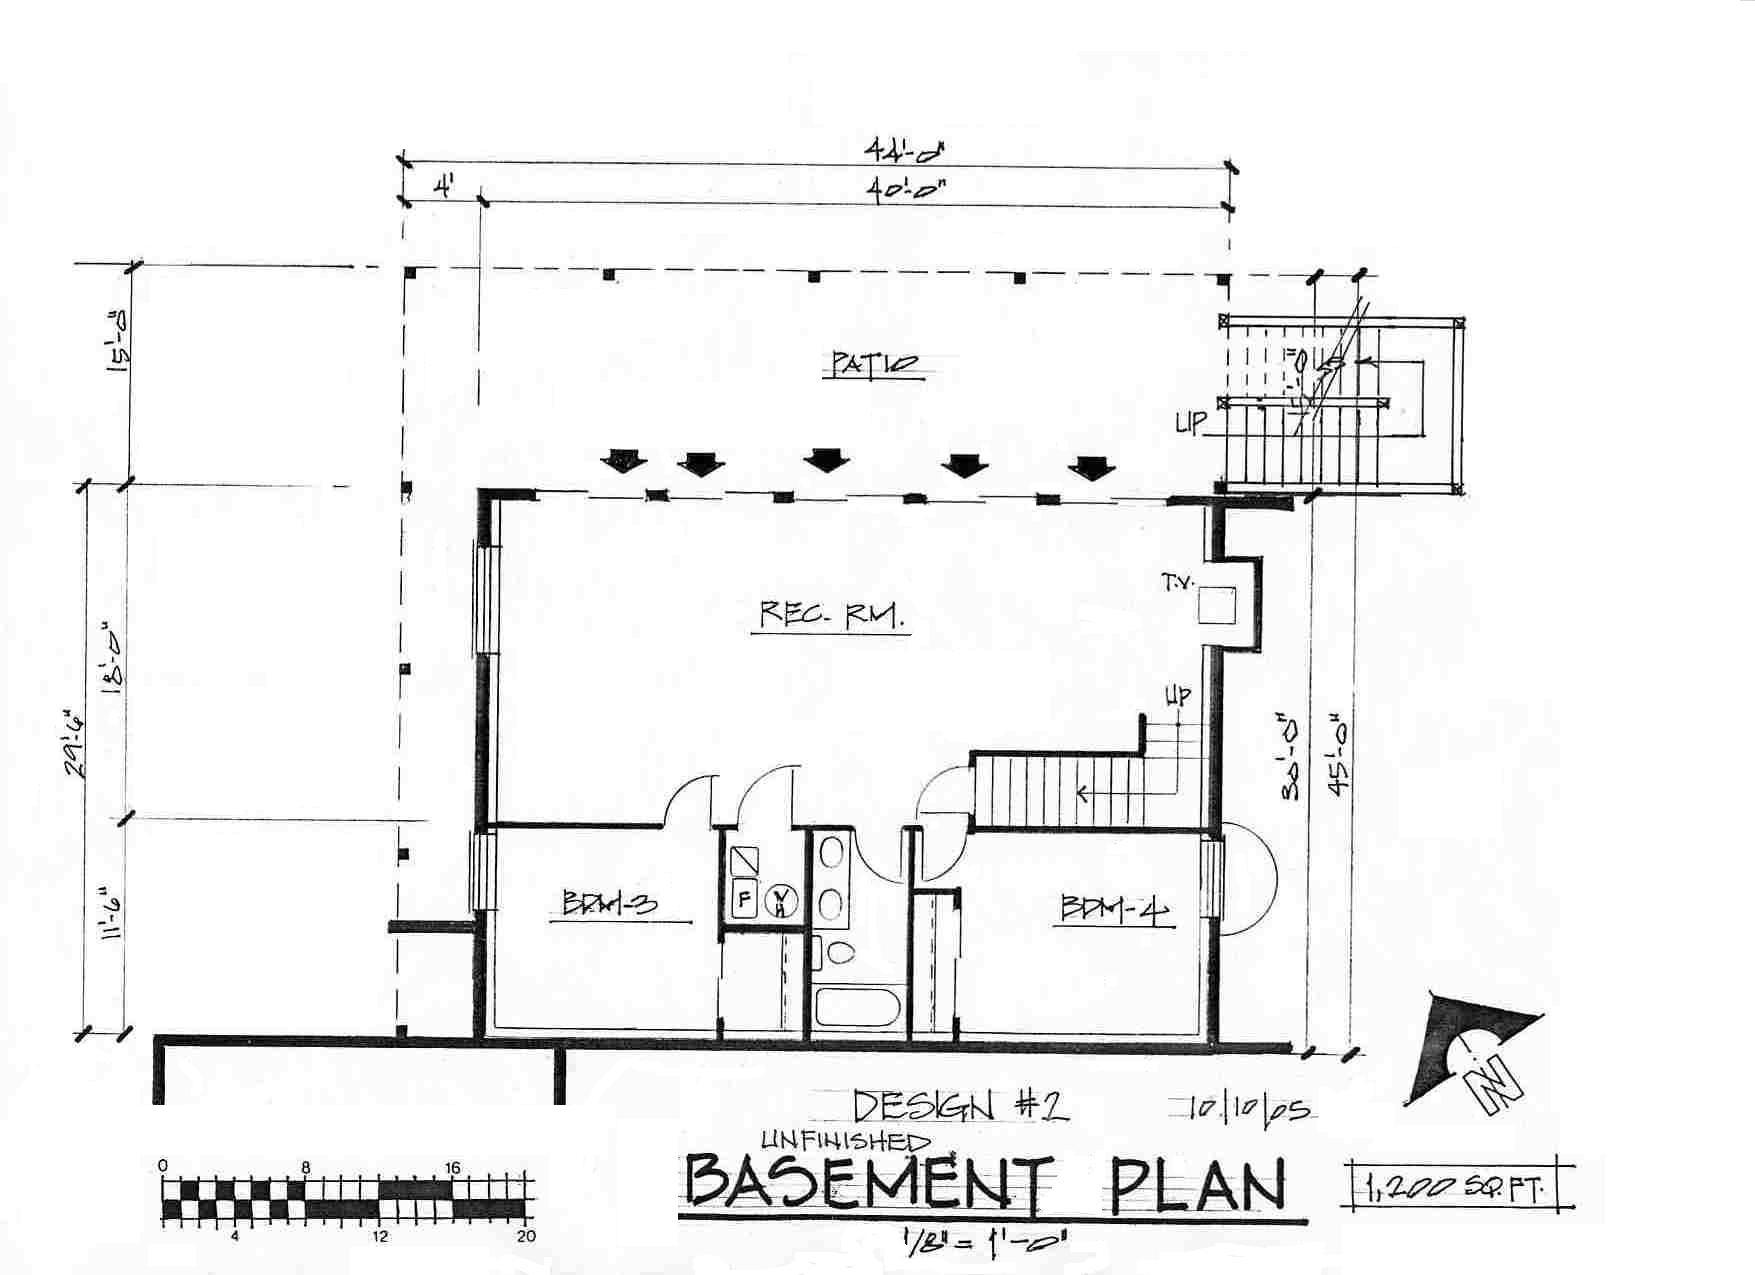 Sample Design Sketches - The Plan Shoppe on 1 story fireplaces, loft house plans, large one story house plans, apartment house plans, single story country house plans, house house plans, 3 story house plans, 1 story garages, contemporary house plans, bungalow house plans, open one story house plans, 2 story house plans, multi story house plans, cabin house plans, traditional house plans, spa house plans, best one story house plans, large single story house plans, 1 story office, one story mediterranean house plans,